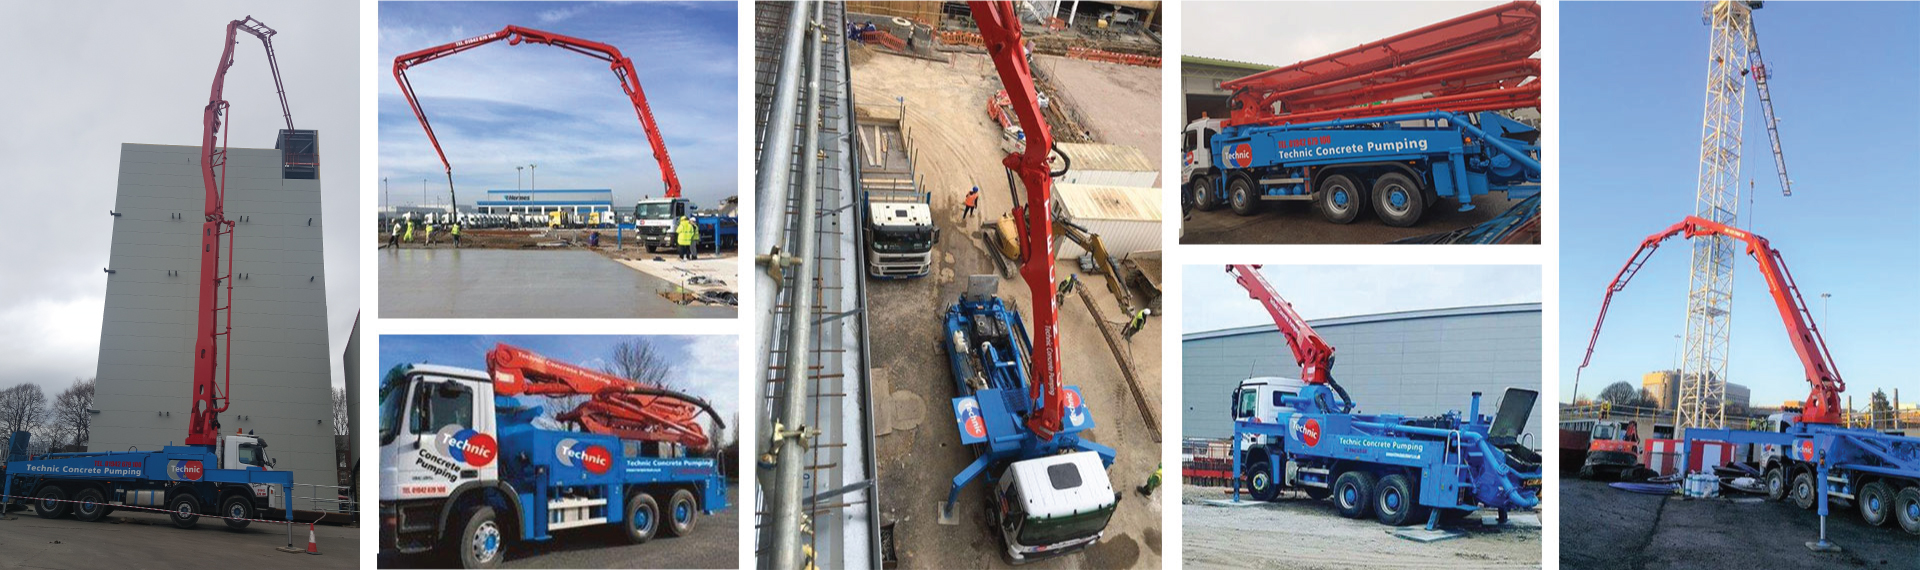 Mobile Concrete Pumps Hire Pump Plant Hire Placement UK